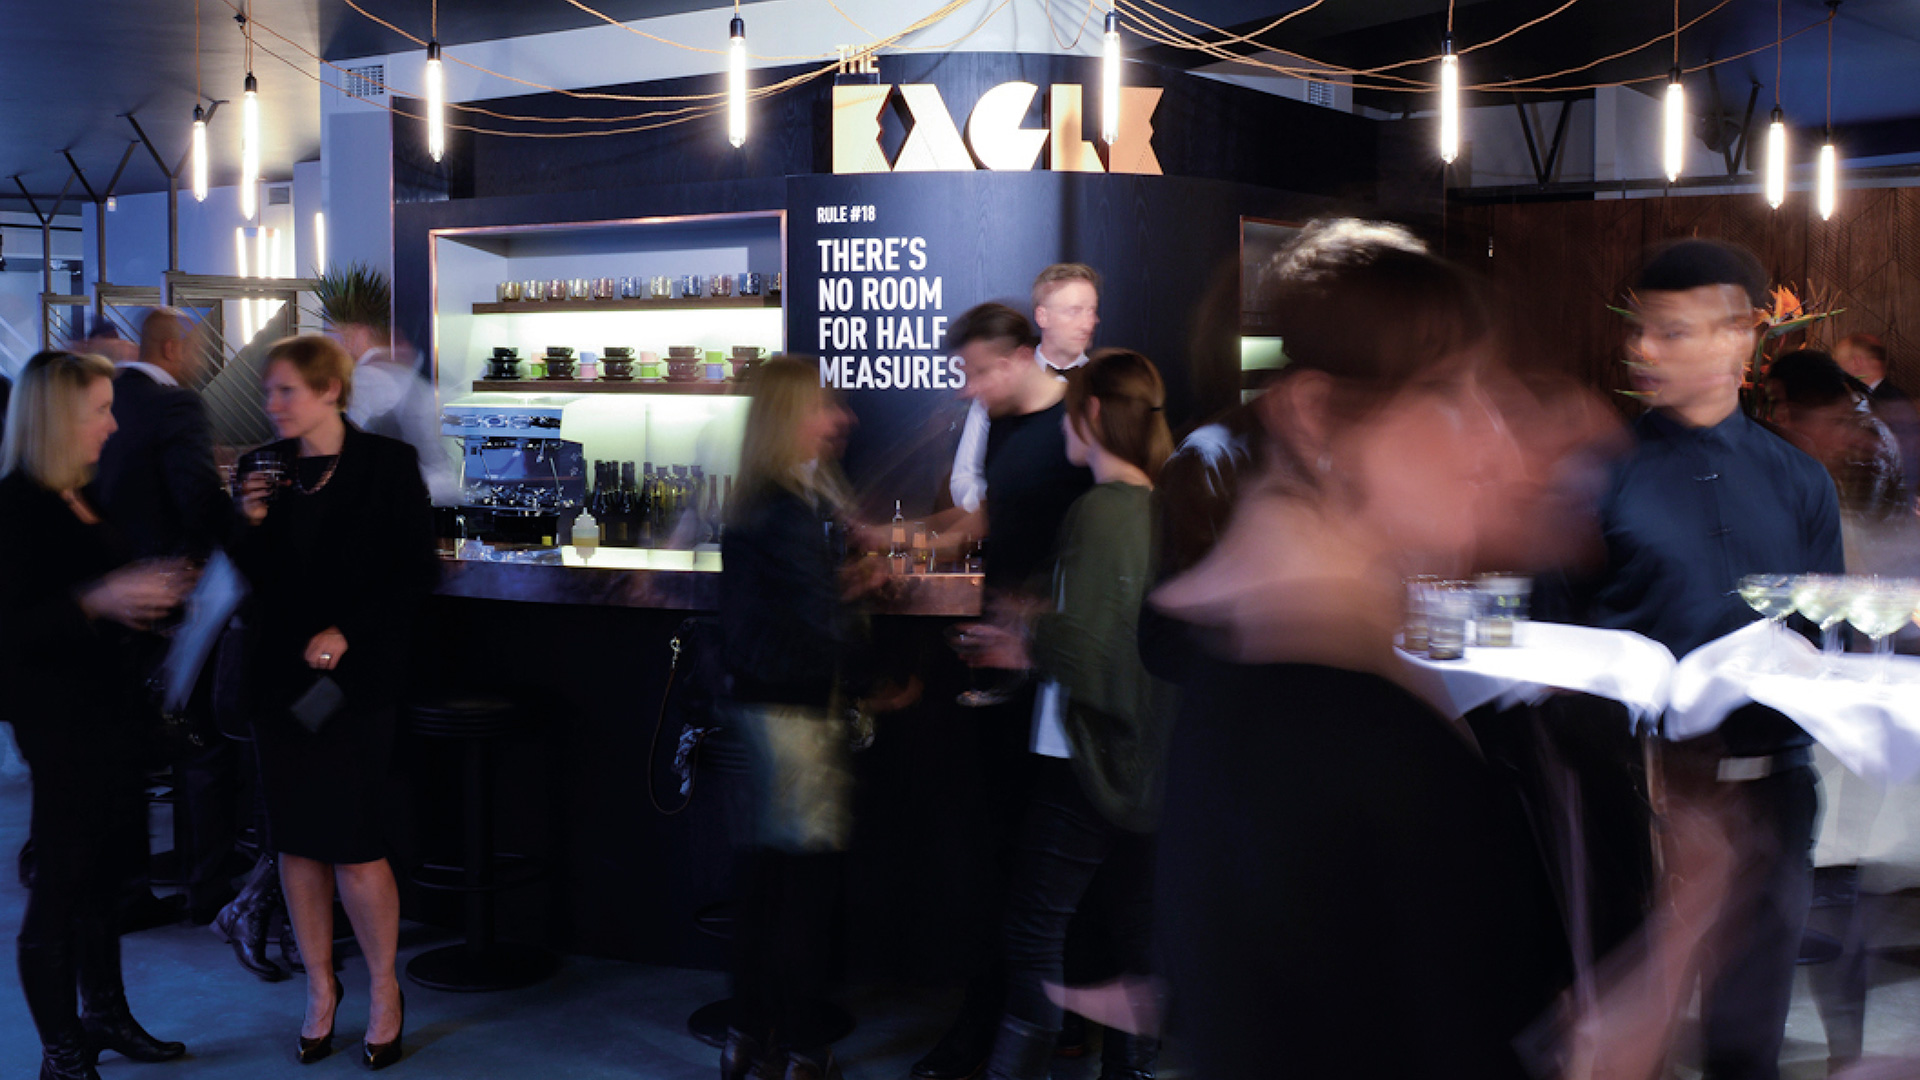 The Eagle event space and marketing suite